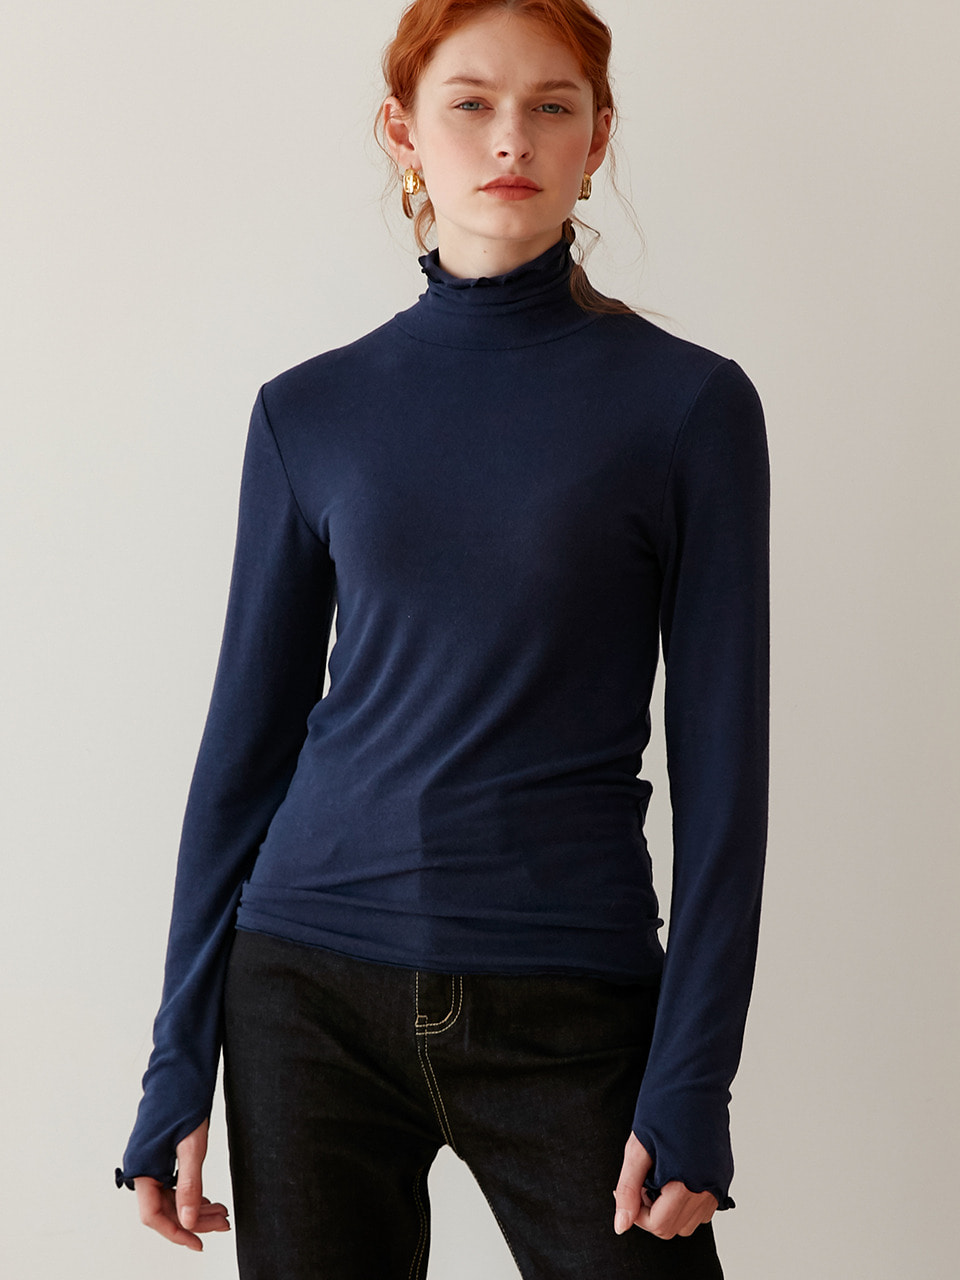 comos'263 slim turtleneck-t (navy)